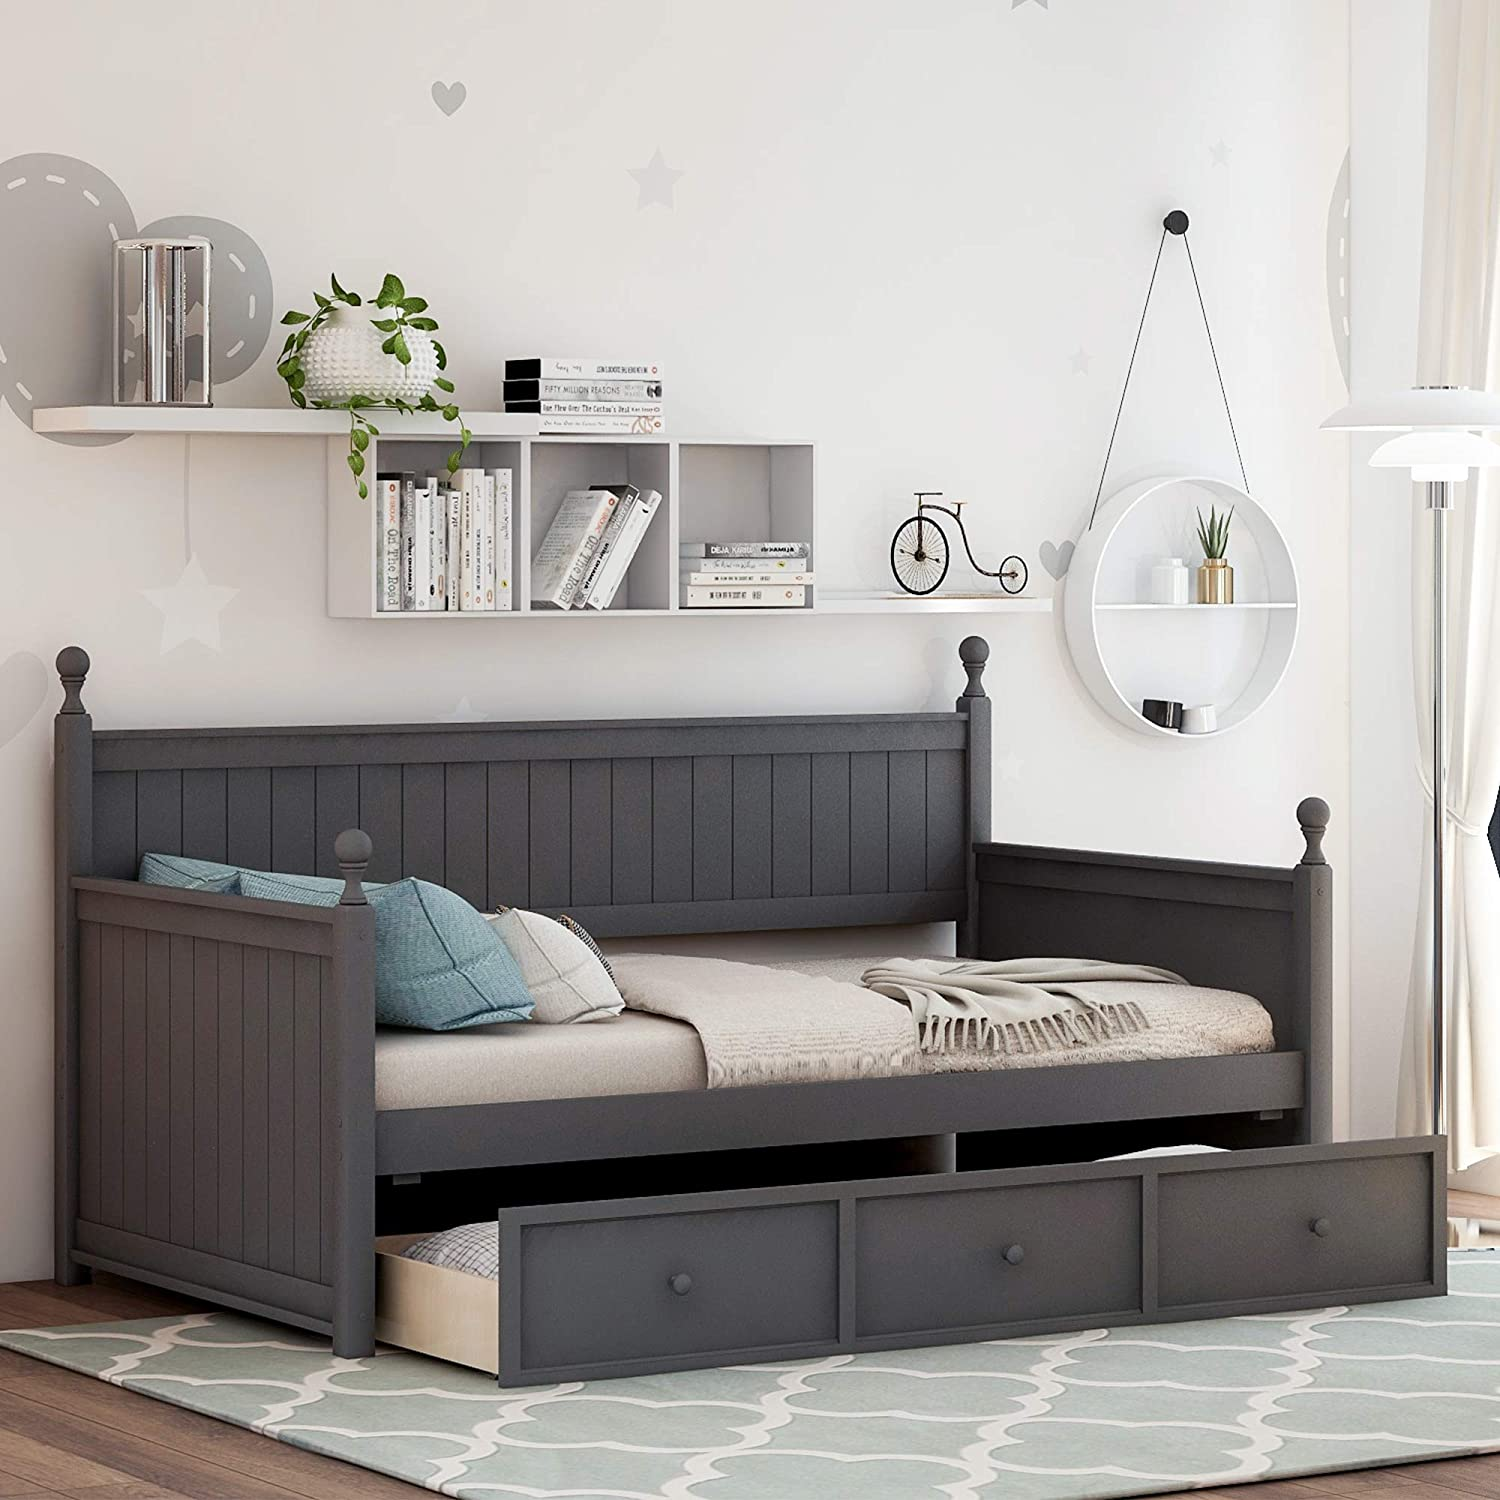 Wood Daybed with 3 Drawers, Solid Wood Daybed Twin Size Bed Frame for Kids/Adults, No Box Spring Needed, Gray